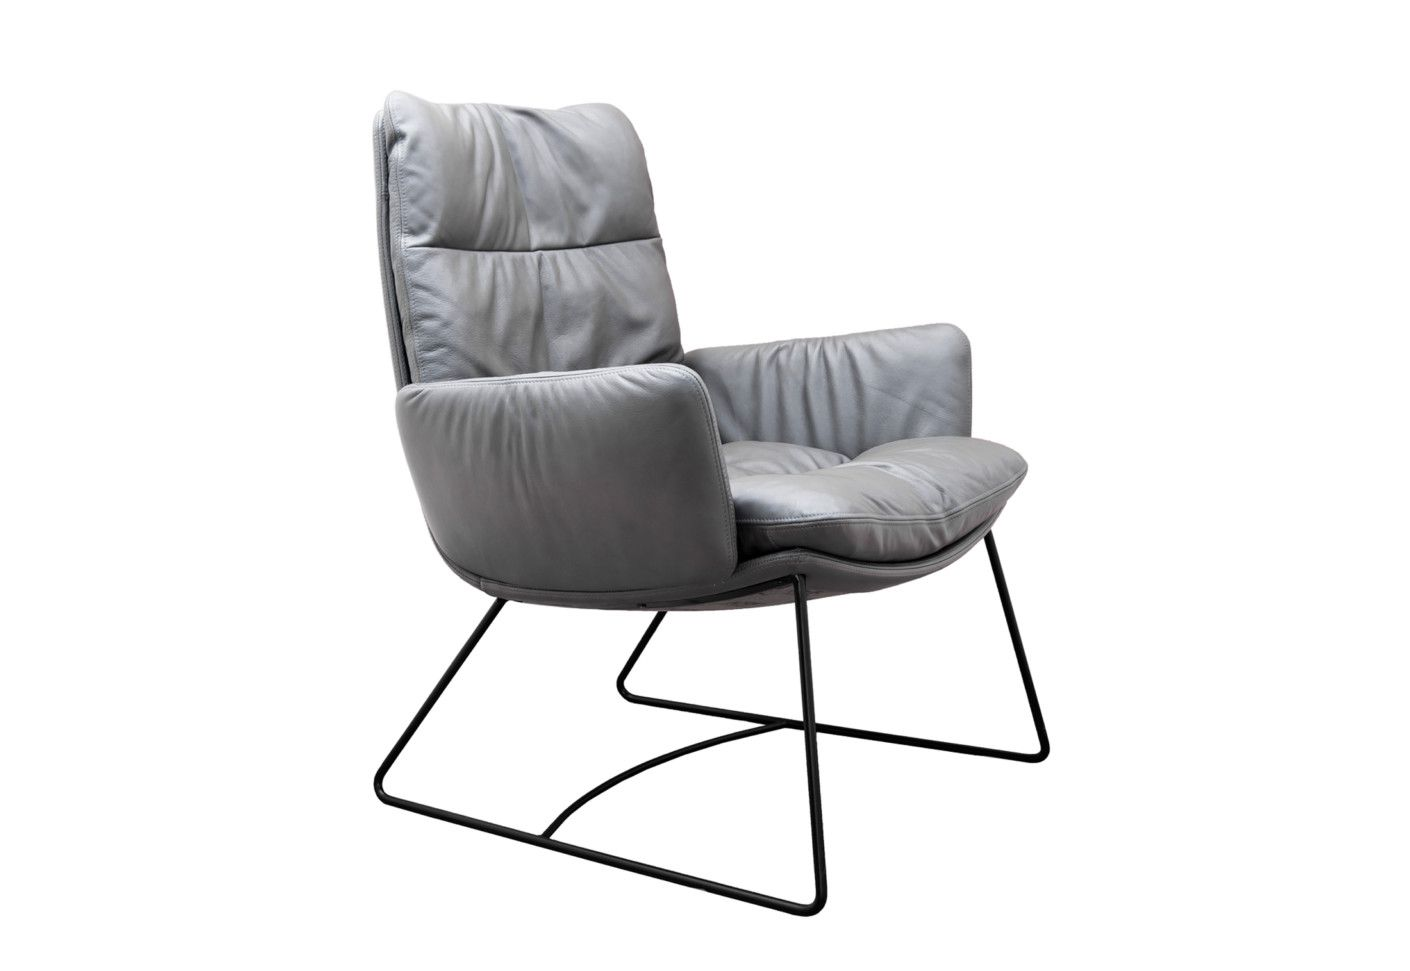 Armchairs Arva Lounge Armchair With Skids By Kff At Stylepark Lounge Design Sessel